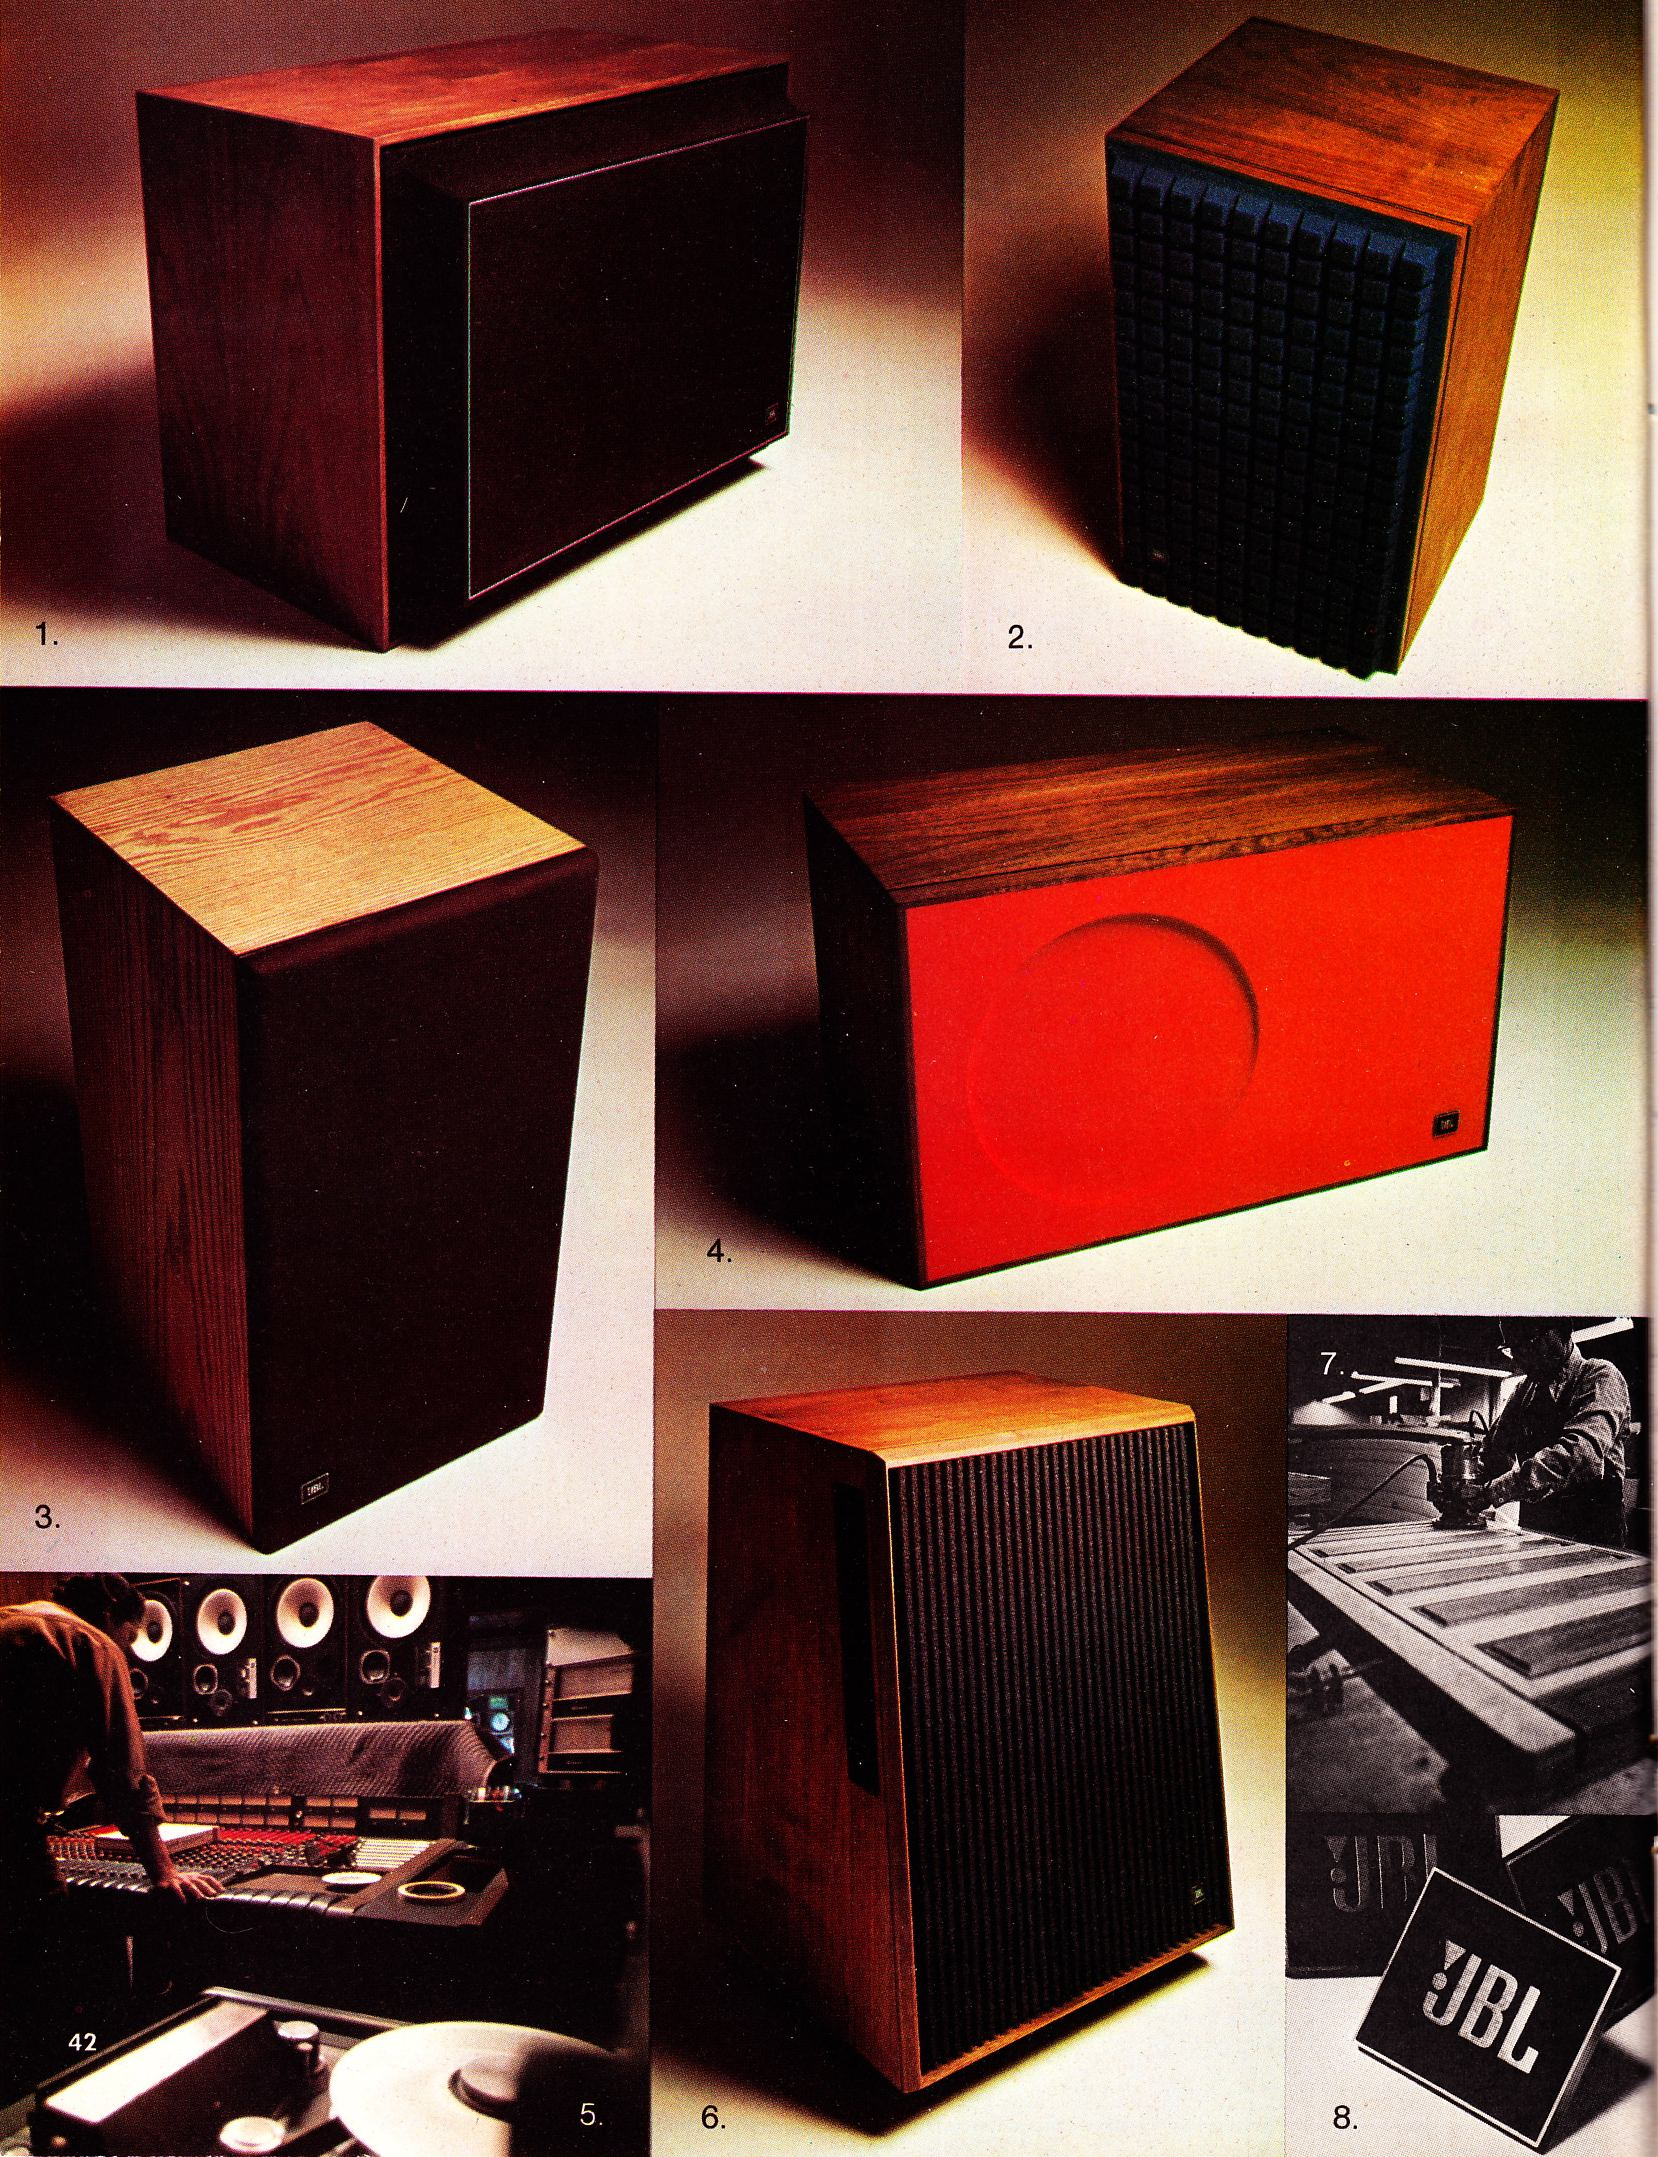 vintage jbl speakers craigslist. above, jbl vintage jbl speakers craigslist p